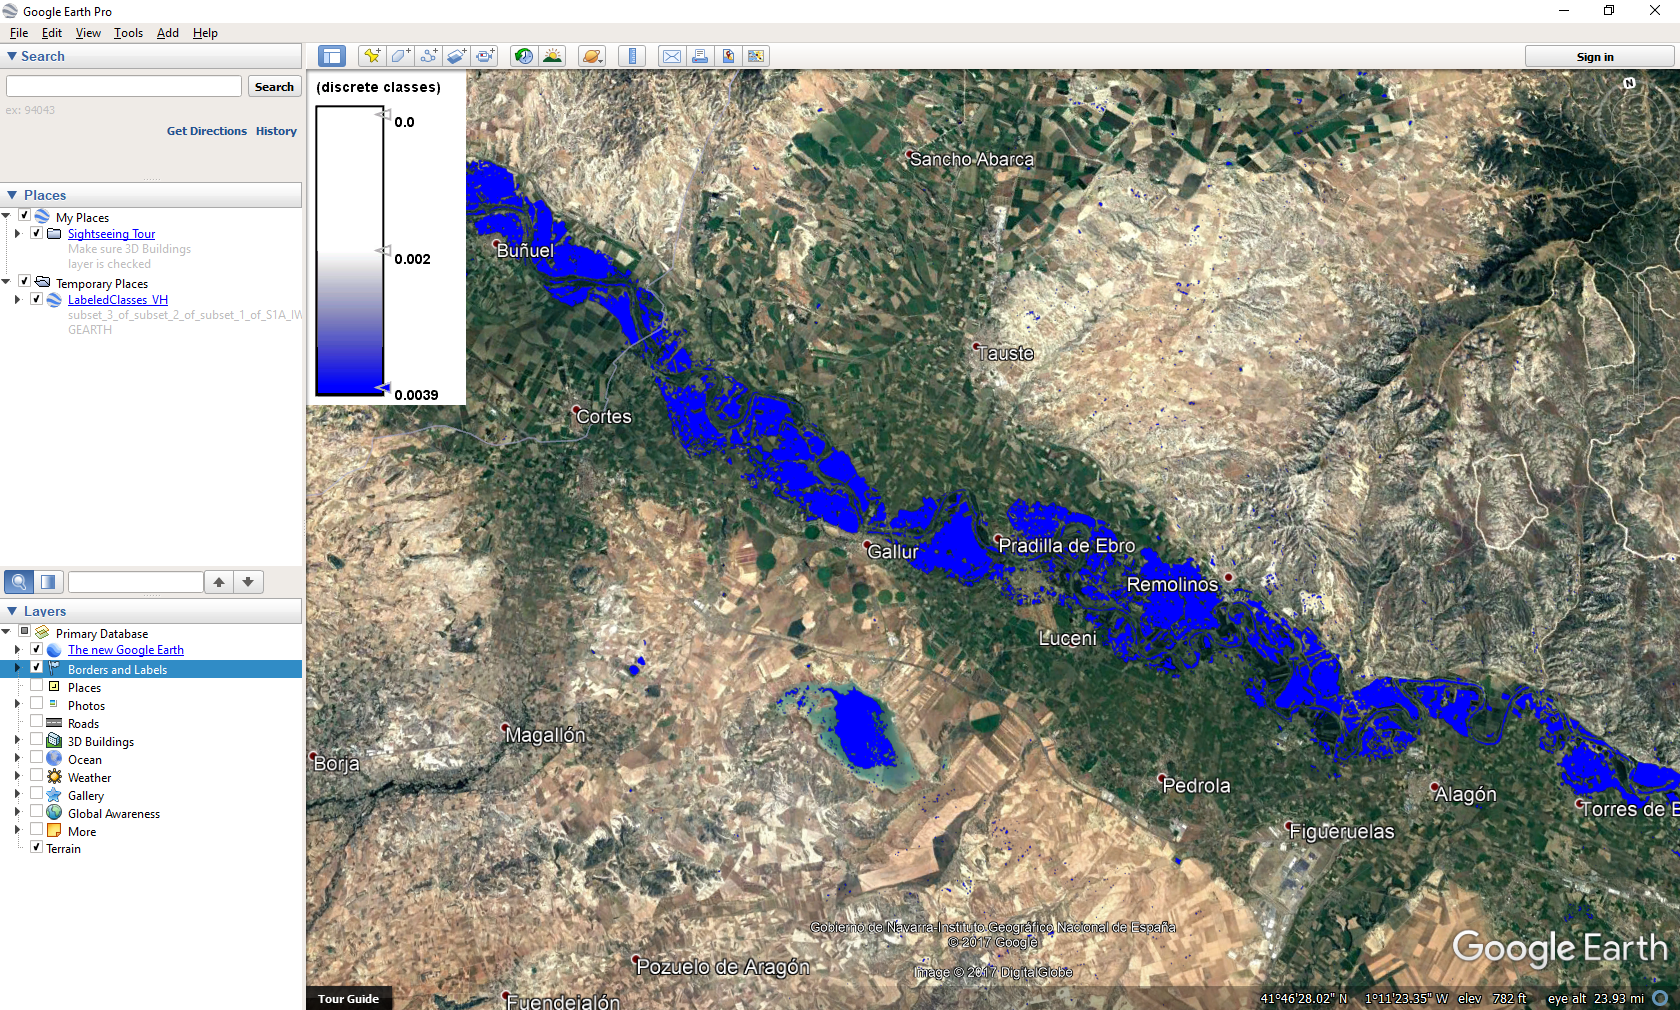 Mapping floods using open source data and software